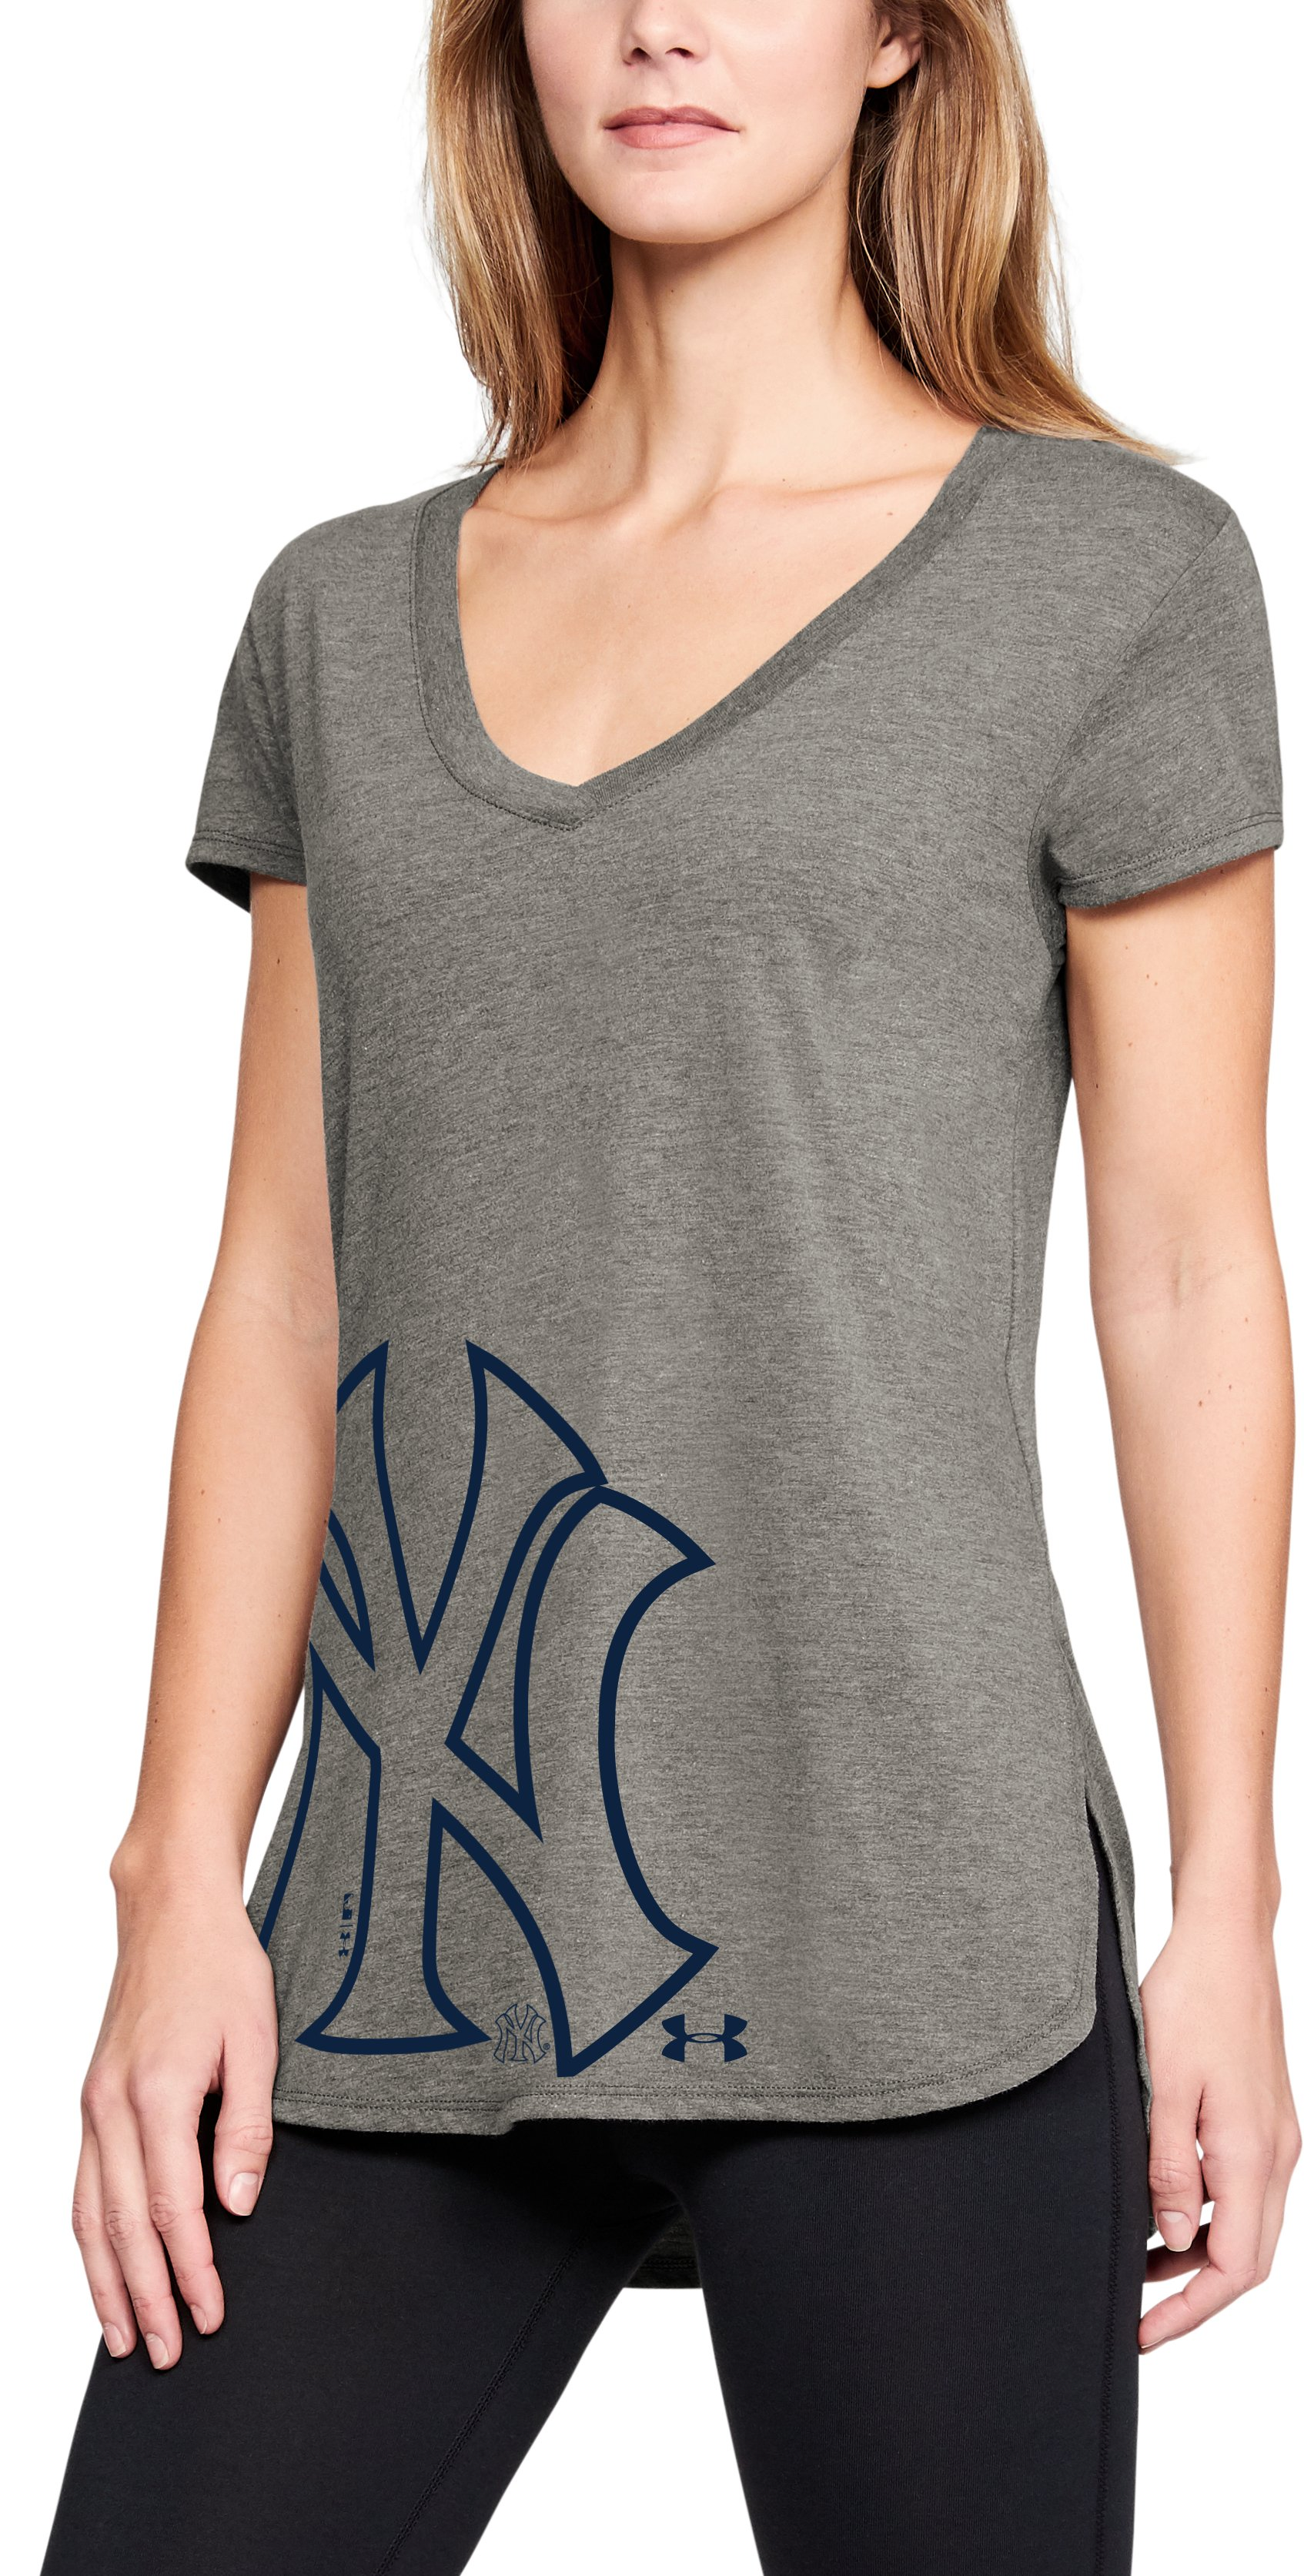 Women's MLB UA Tri-Blend Offset Short Sleeve, MLB_NYY_Steel Heather